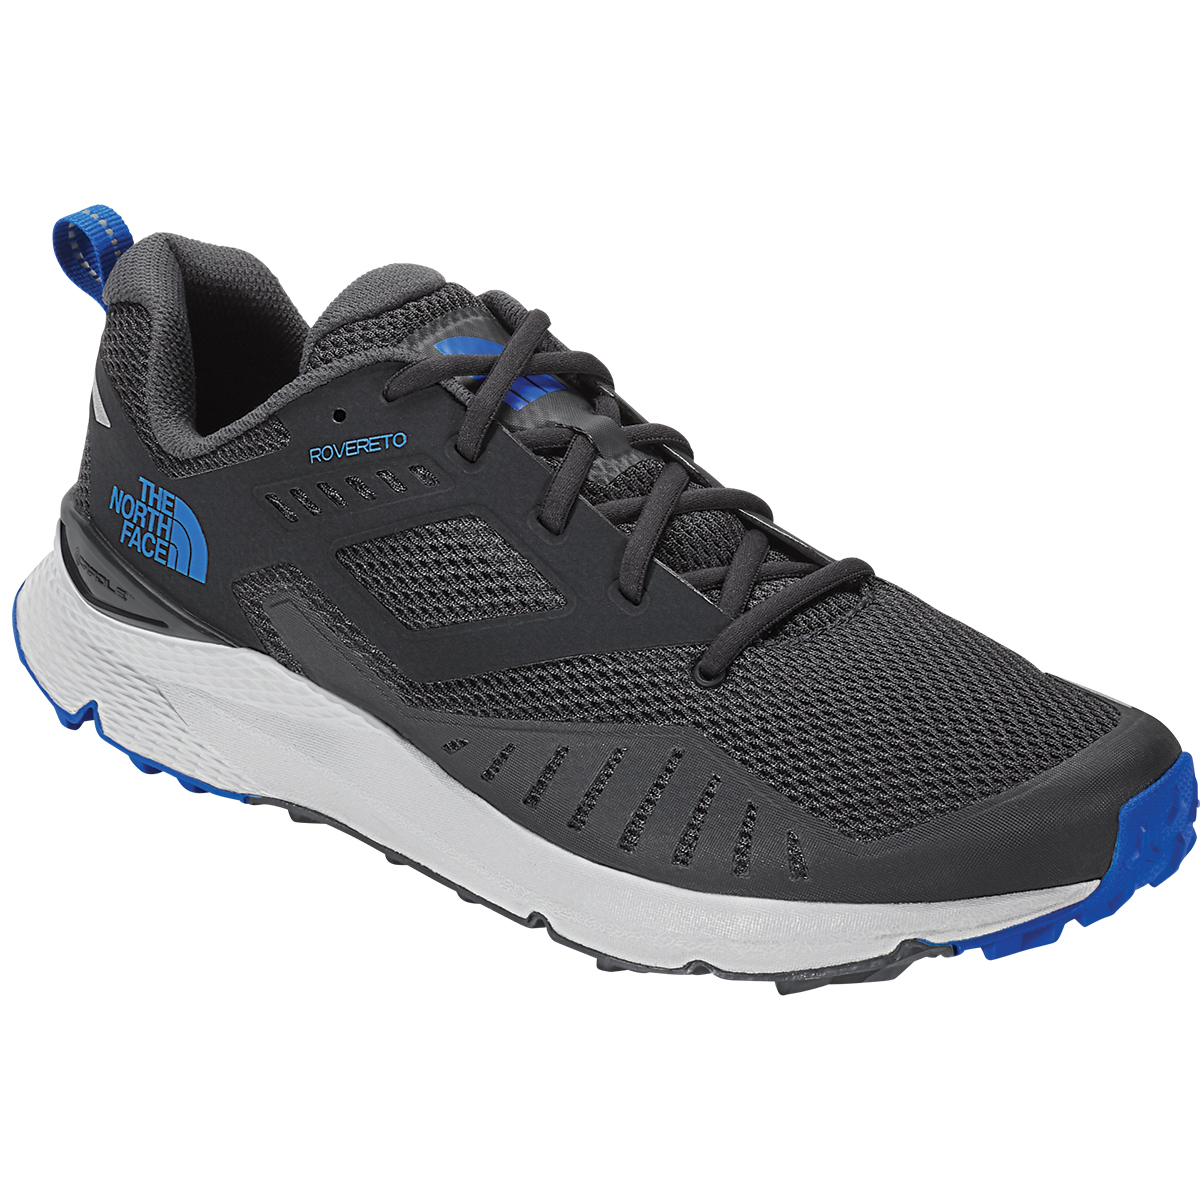 The North Face Men's Rovereto Trail Running Shoes - Black, 12